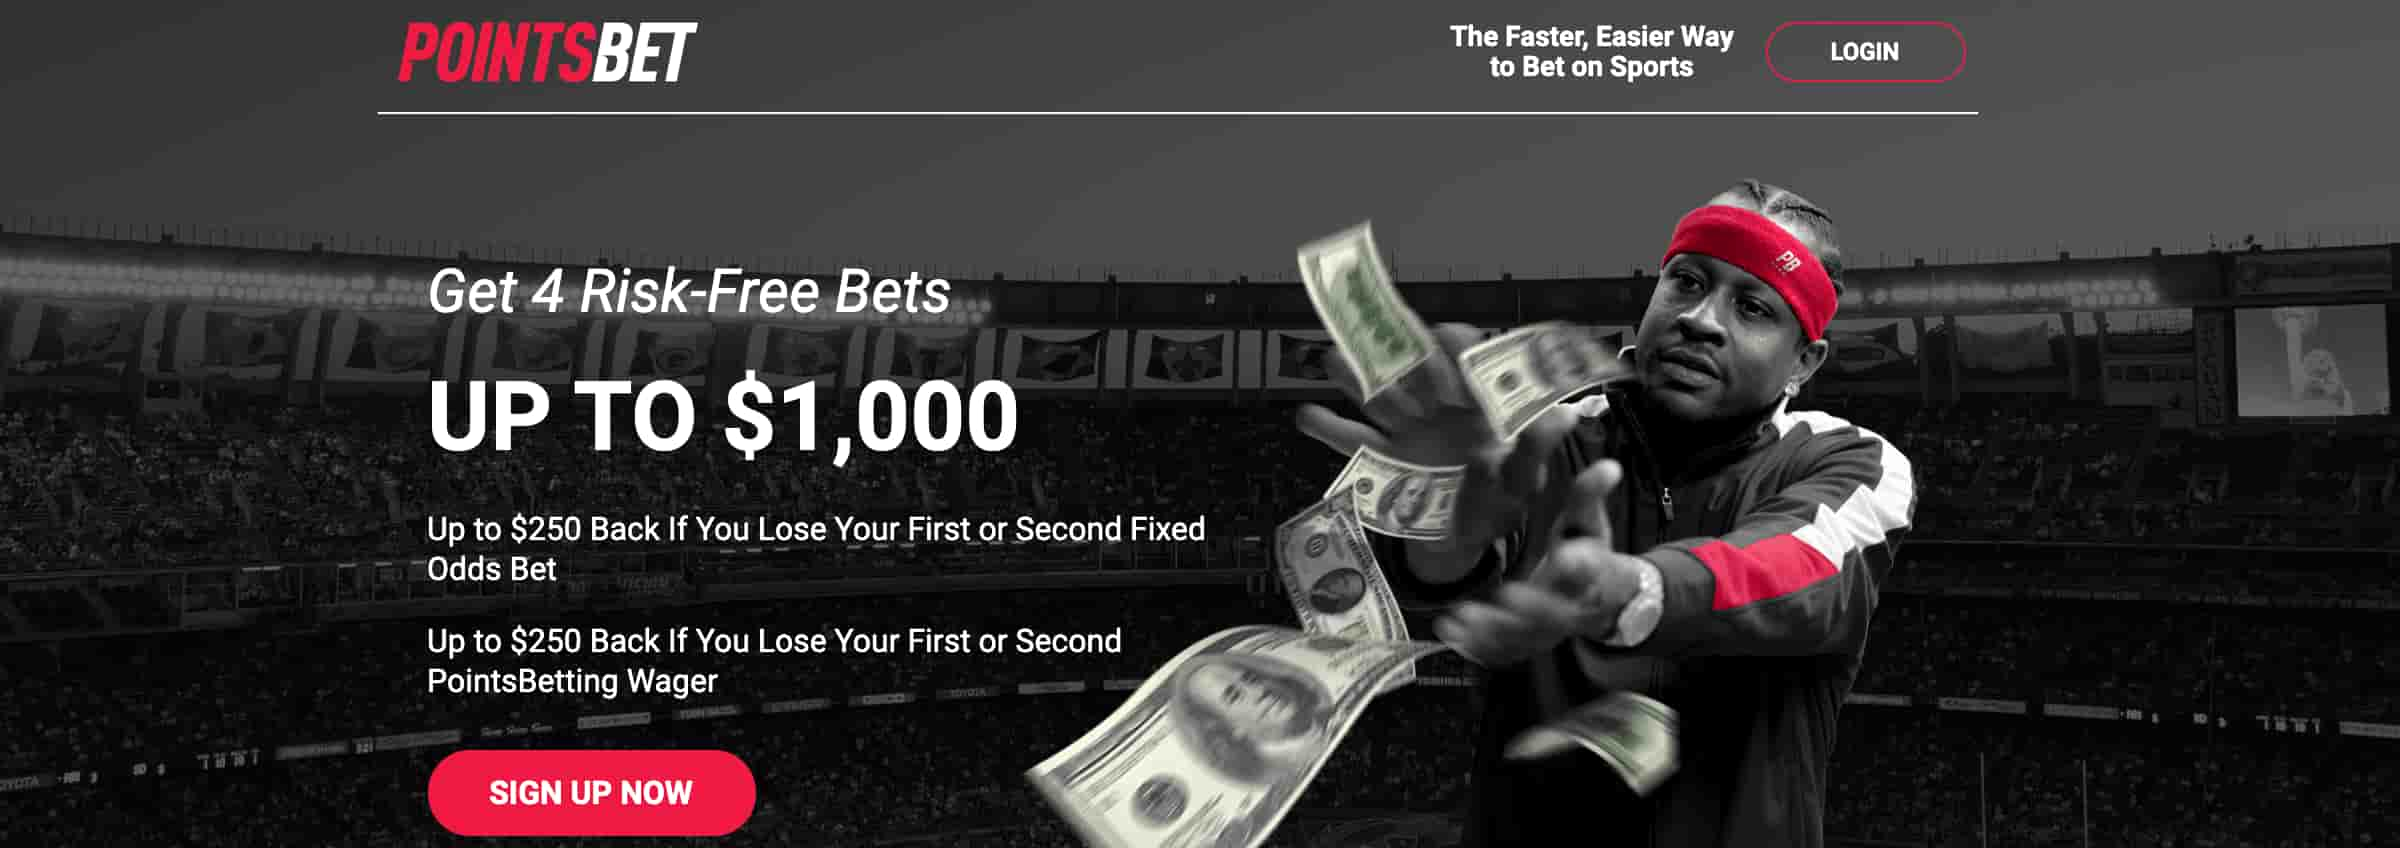 PointsBet Signup Bonus